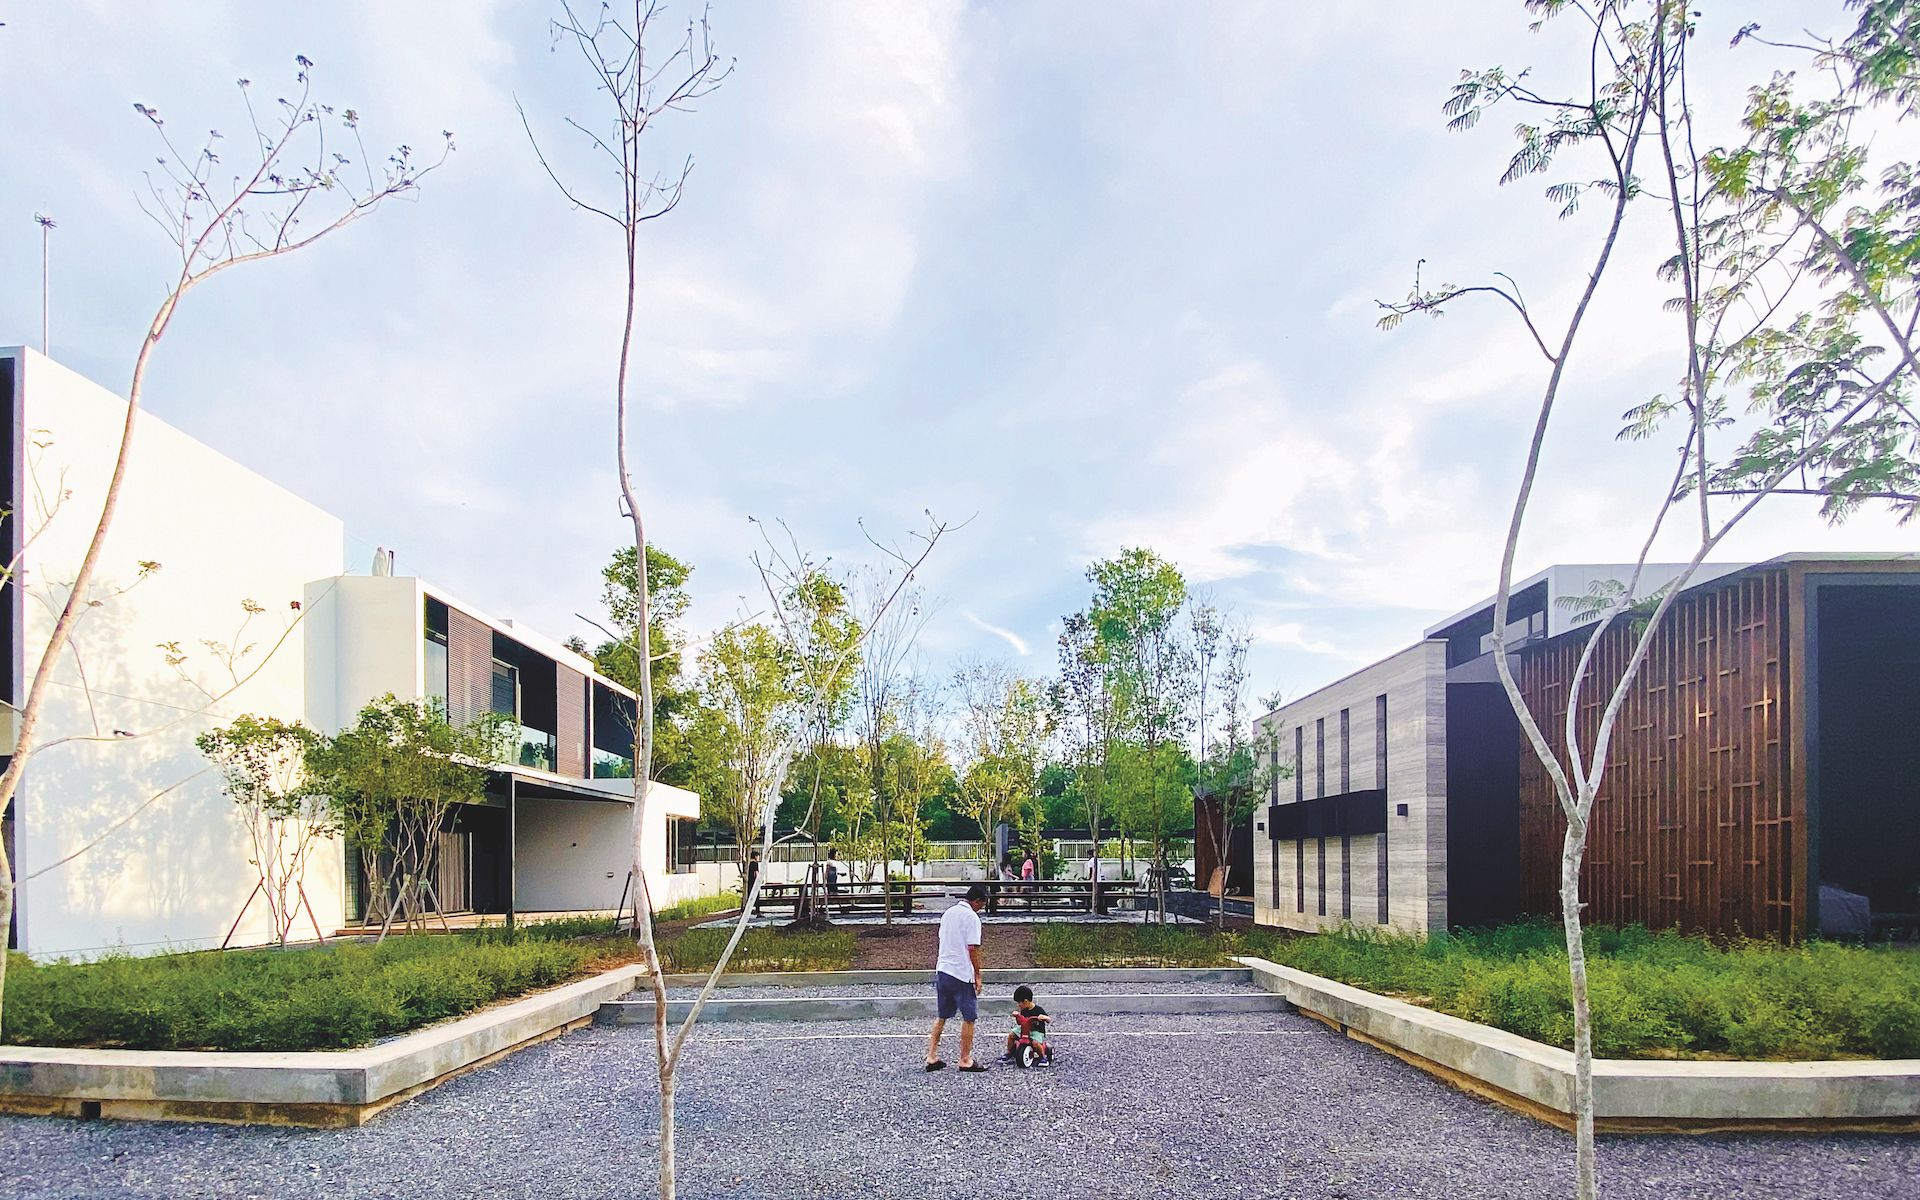 Common courtyards were created as spaces for the whole family to interact